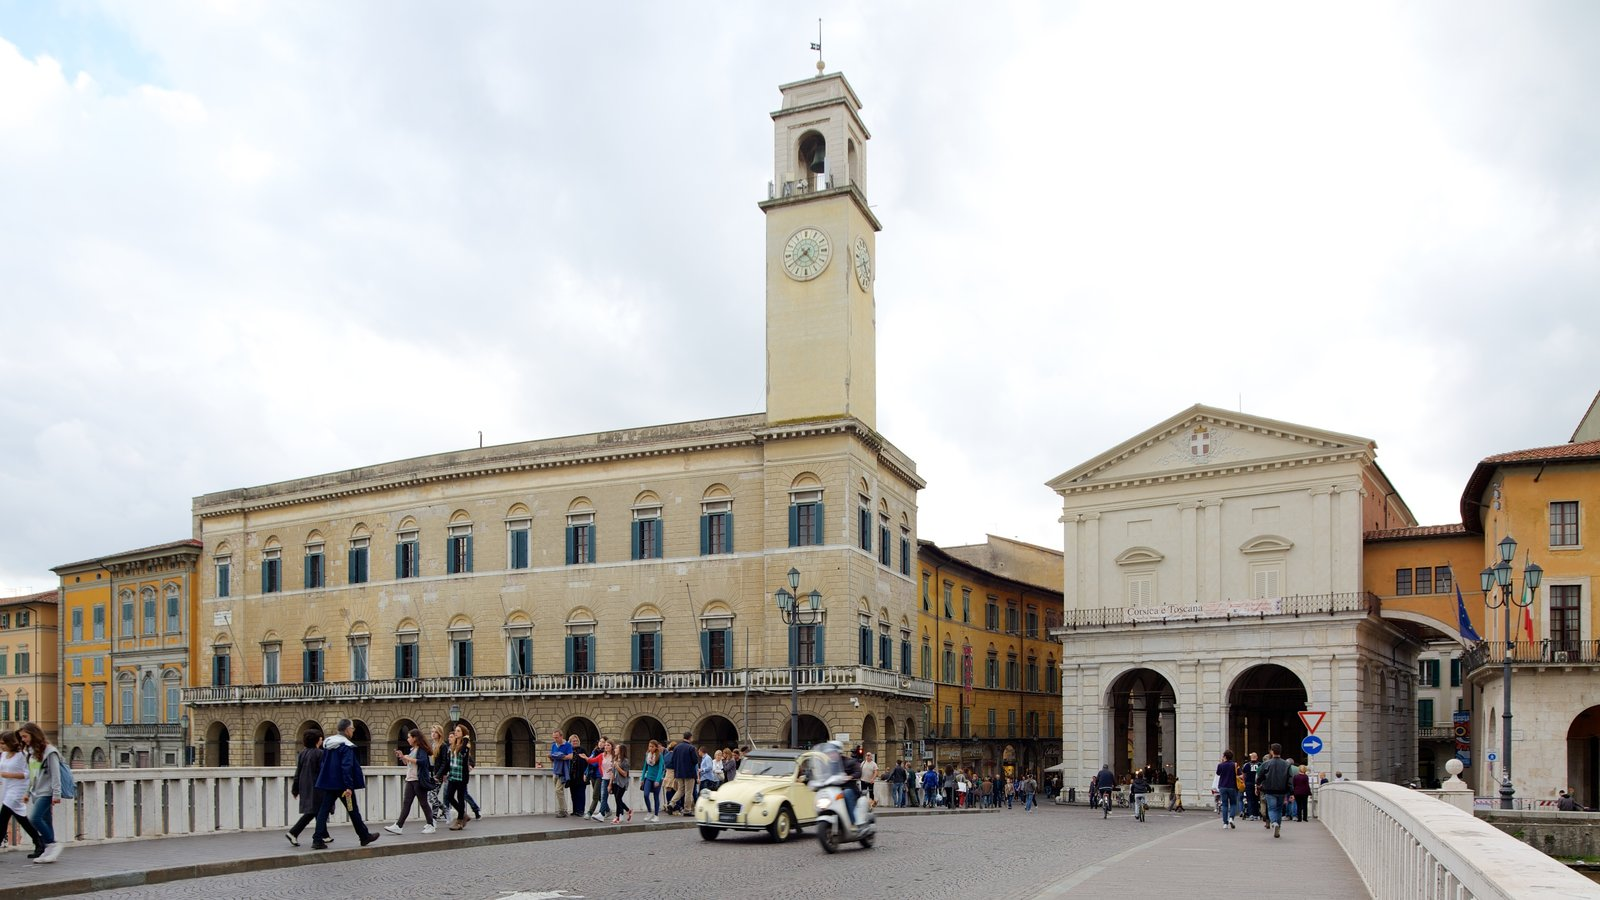 Palazzo Pretorio showing street scenes, heritage architecture and chateau or palace